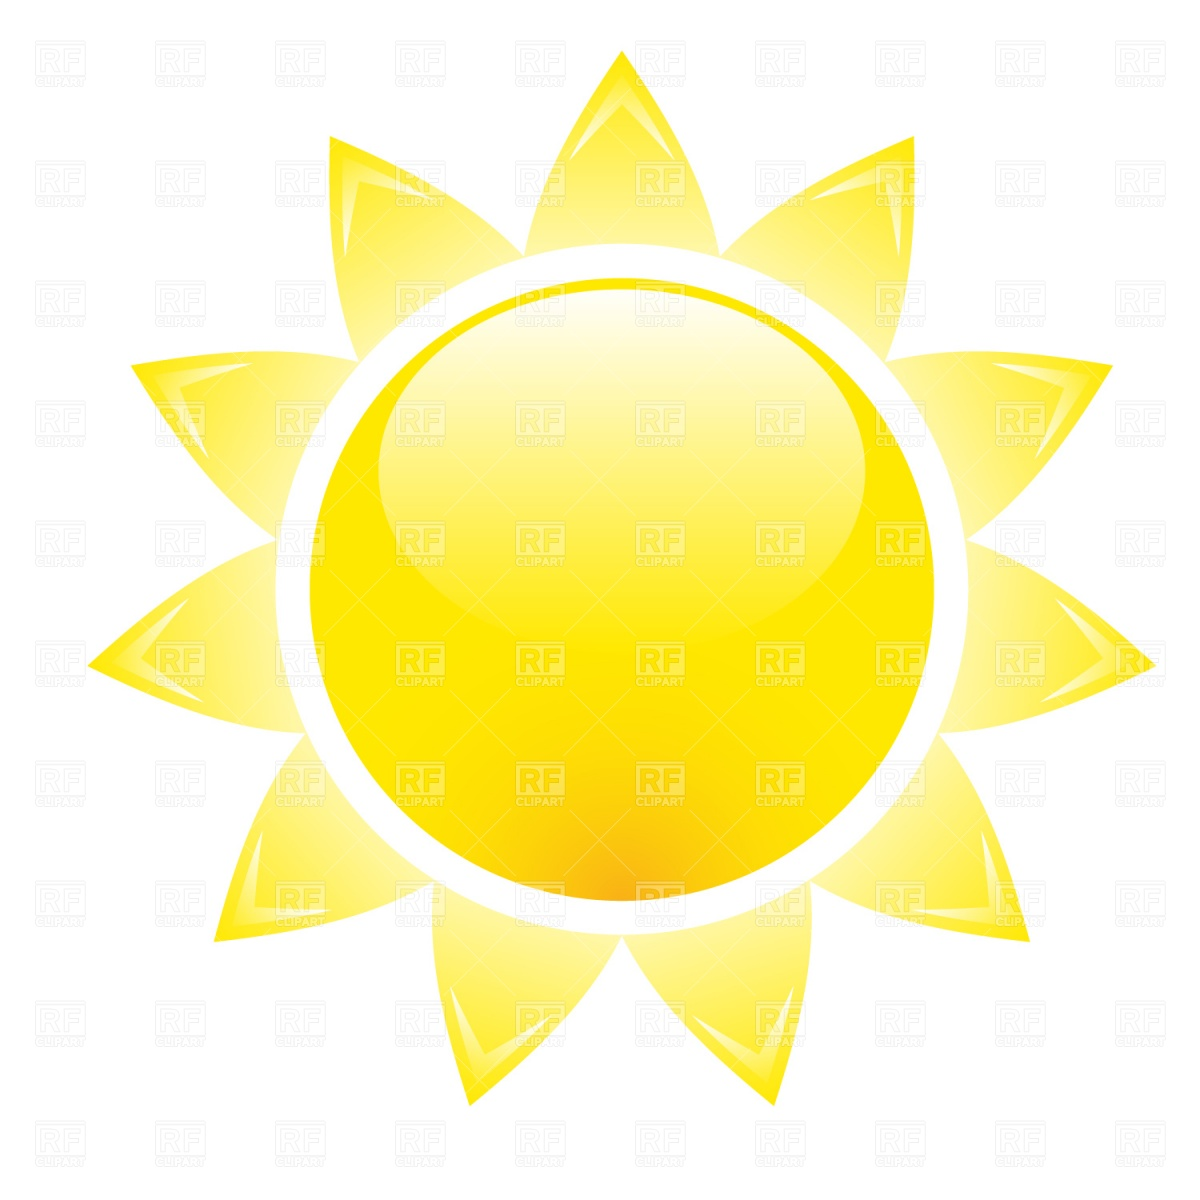 Free Sun Free Clipart Images Glossy Sun -Free Sun Free Clipart Images Glossy Sun Travel Download Royalty Free-5